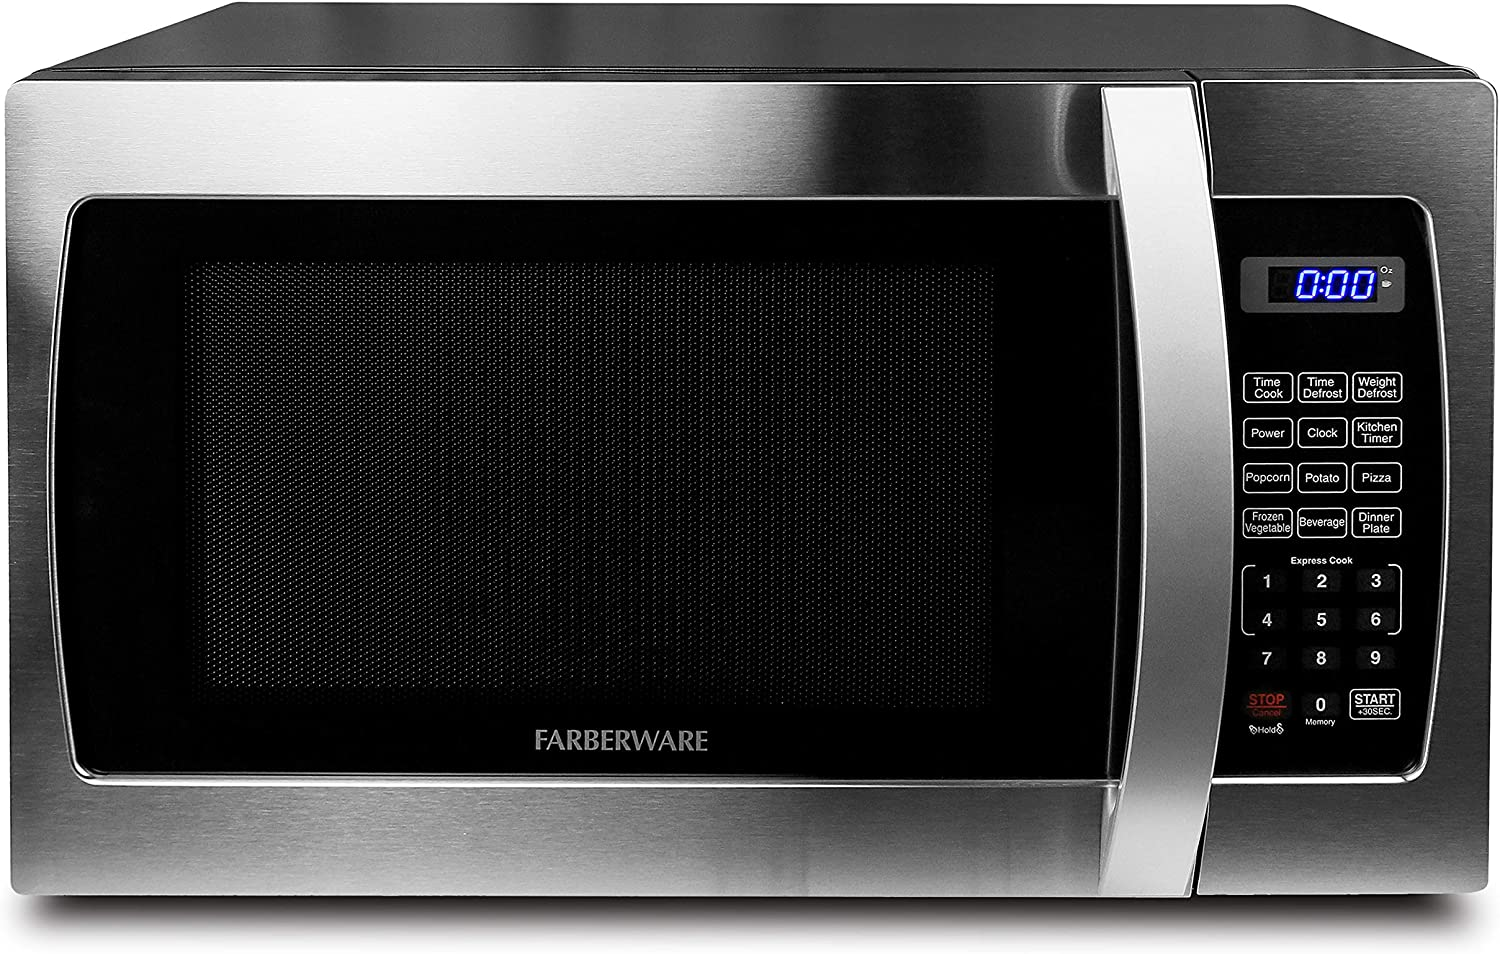 Farberware Professional FMO13AHTBKE 1.3 Cu. Ft. 1000-Watt, Microwave Oven with Blue LED Lighting, Stainless Steel